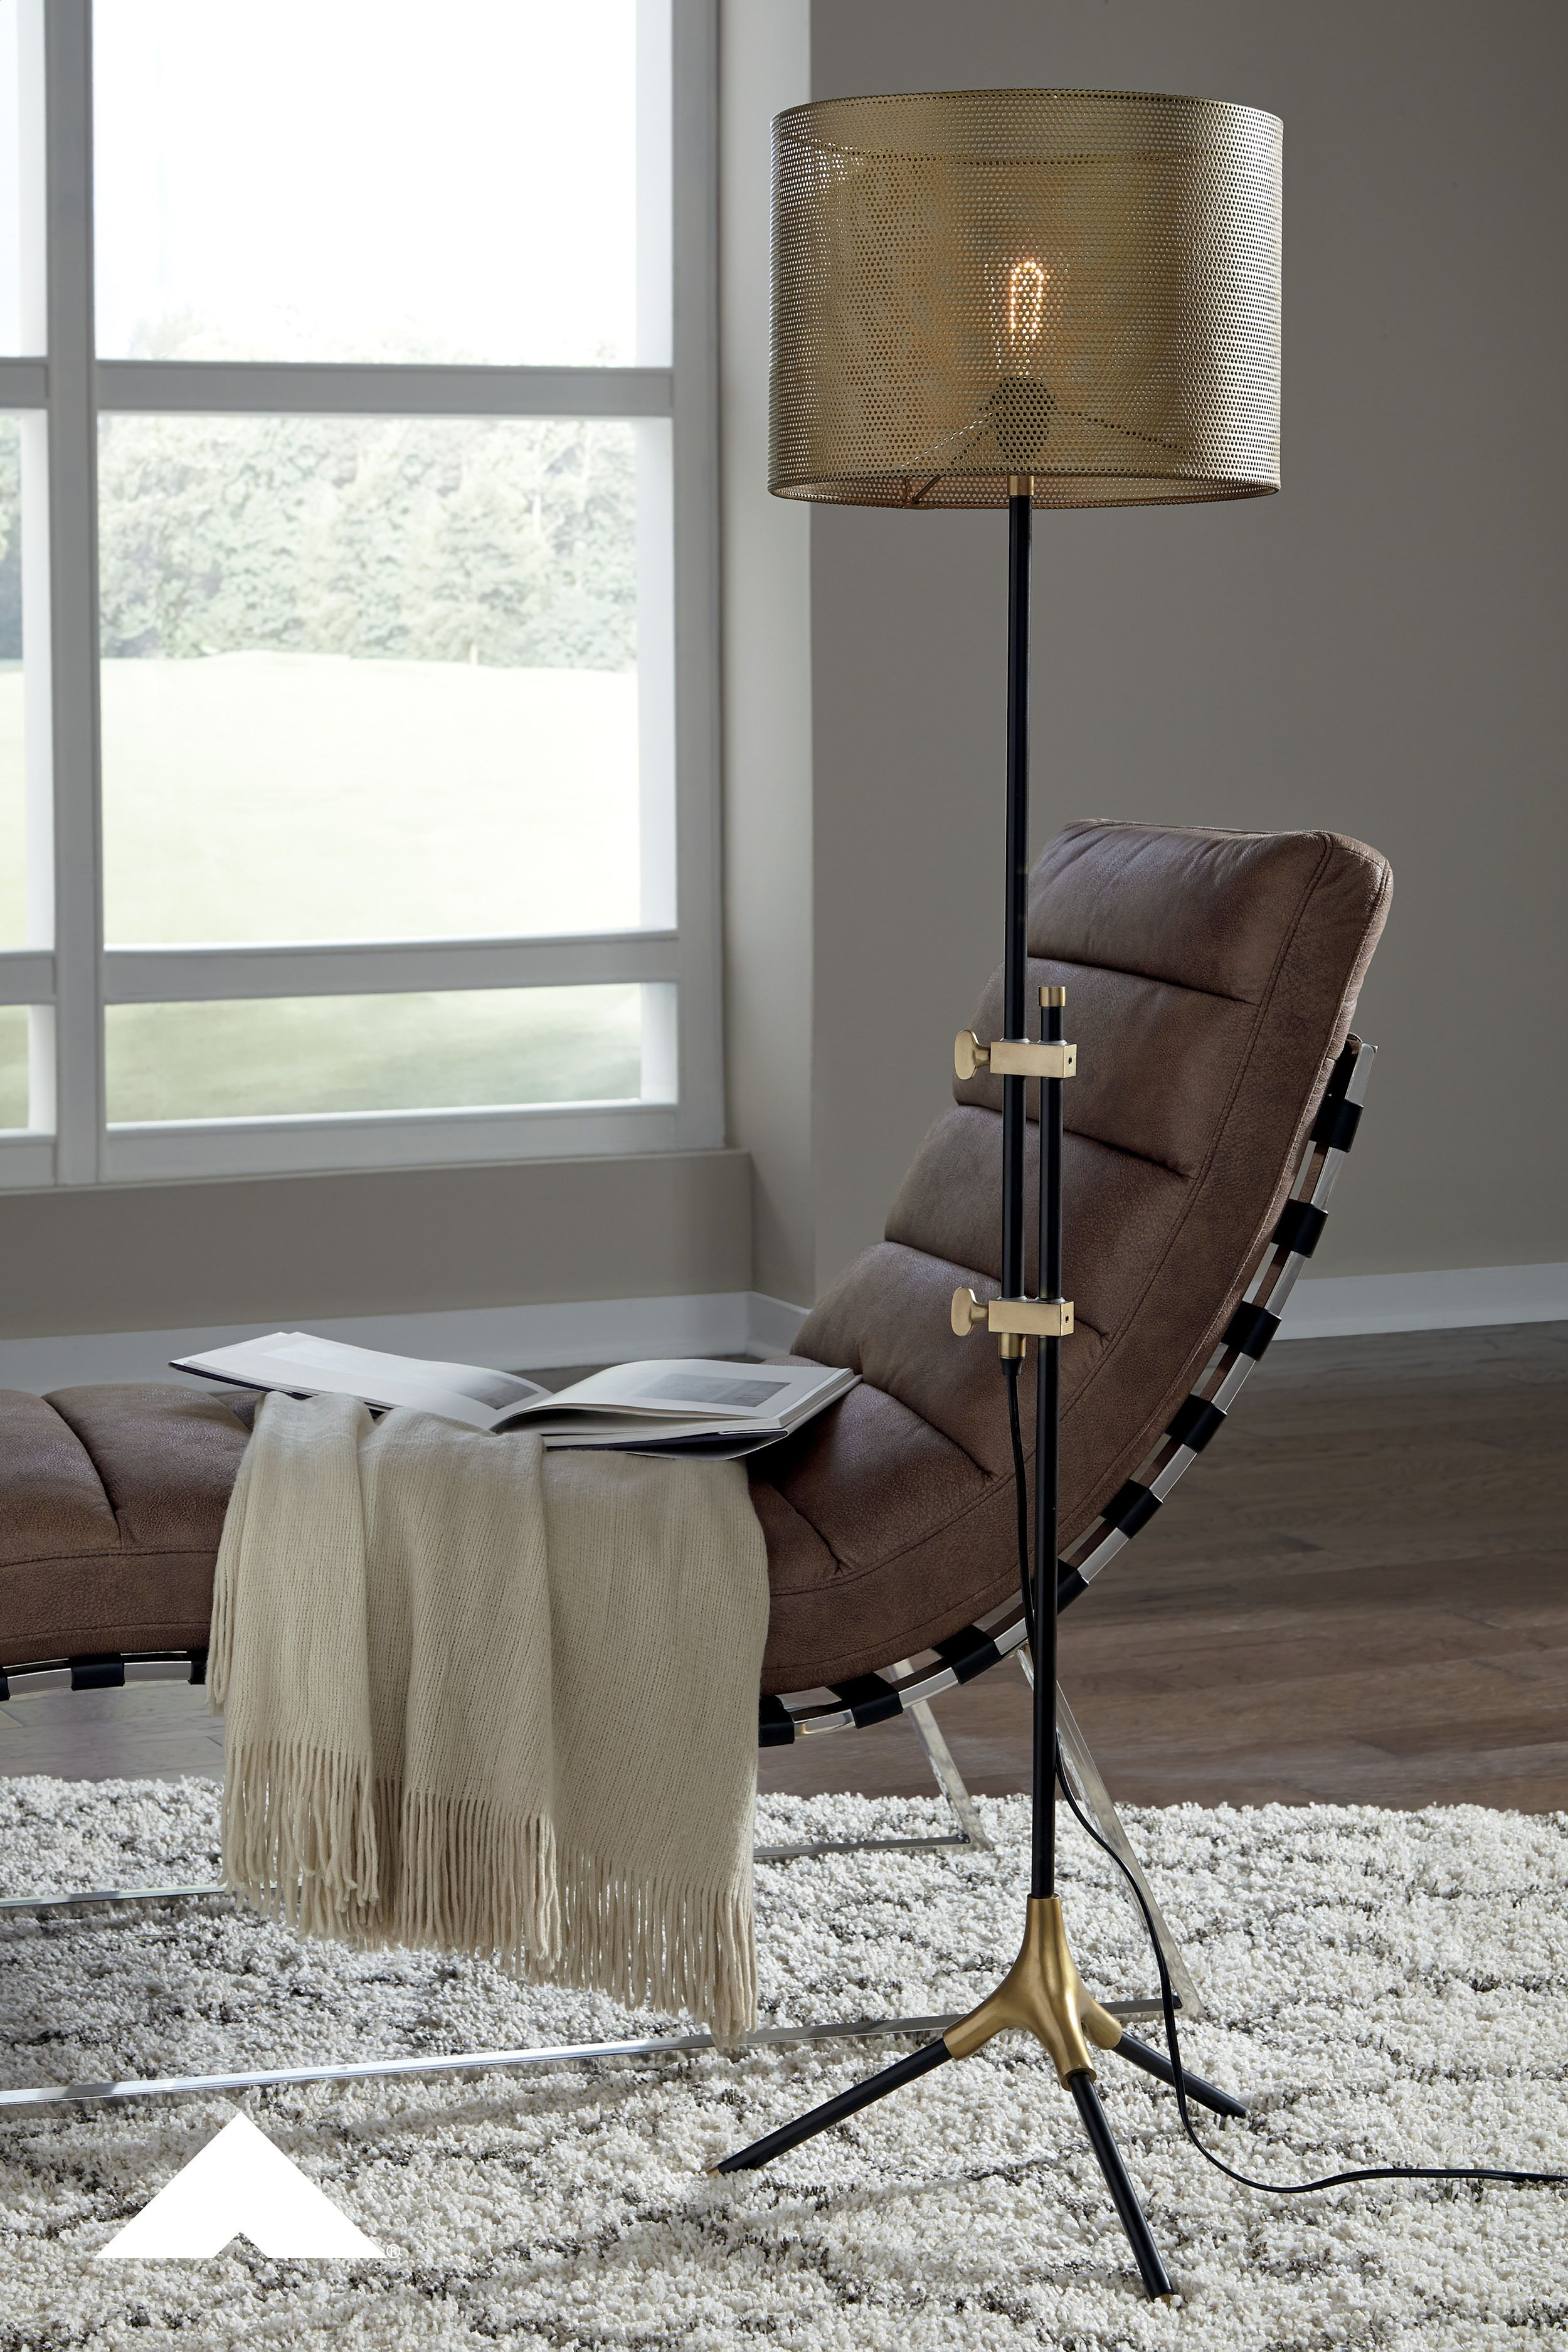 Mance Brass And Gunmetal Finished Metal Floor Lamp By Ashley